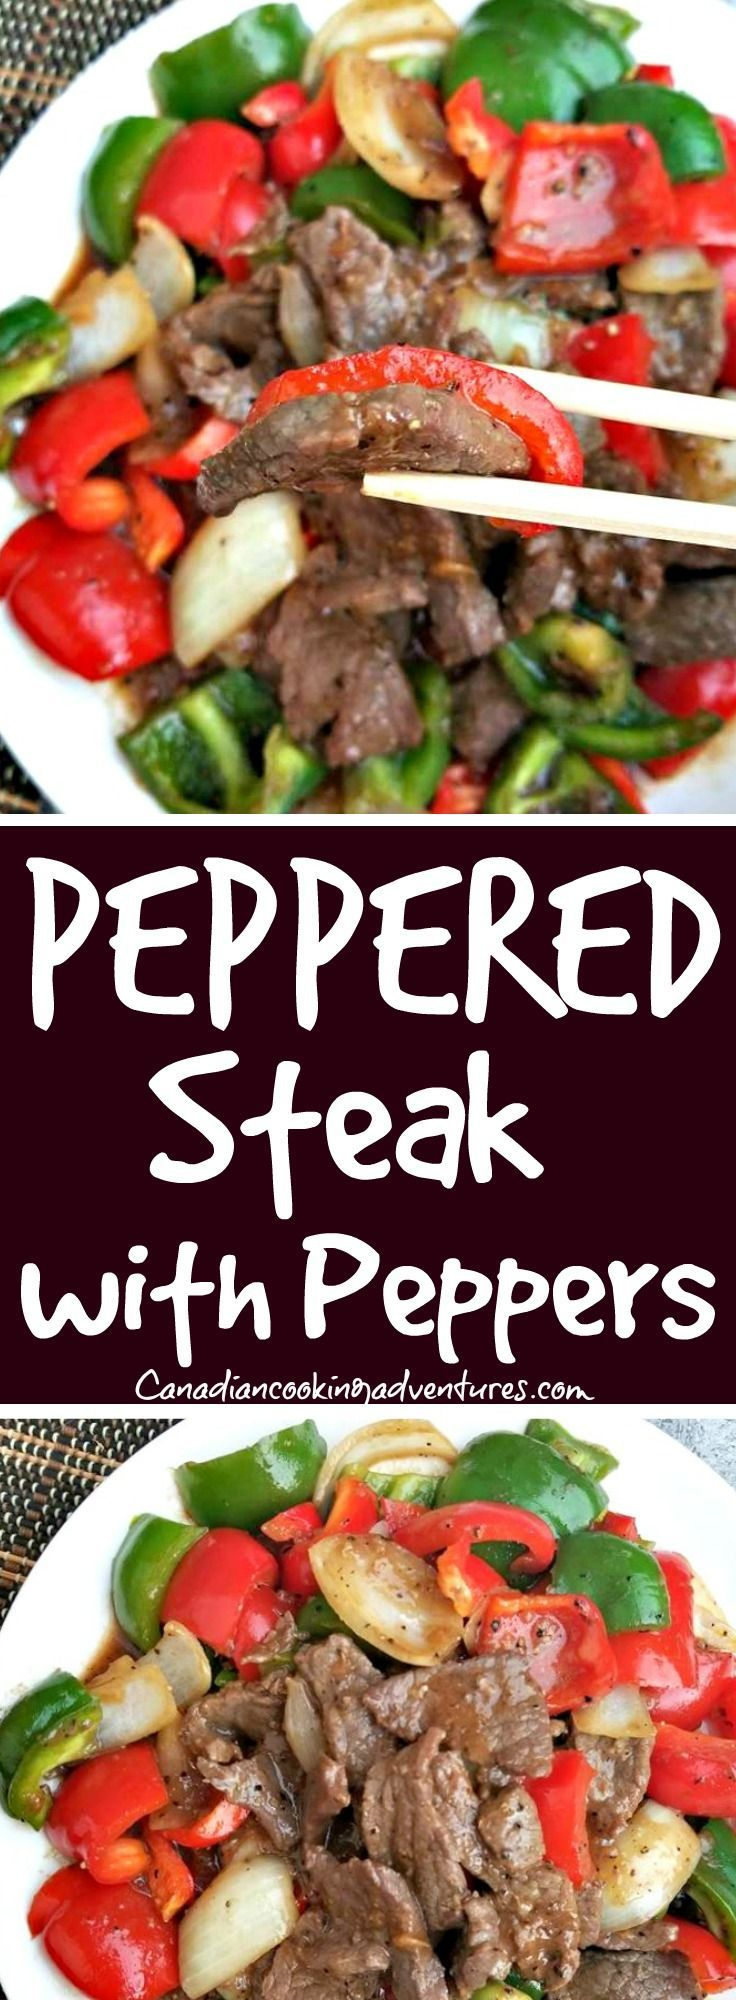 Peppered Steak with Peppers